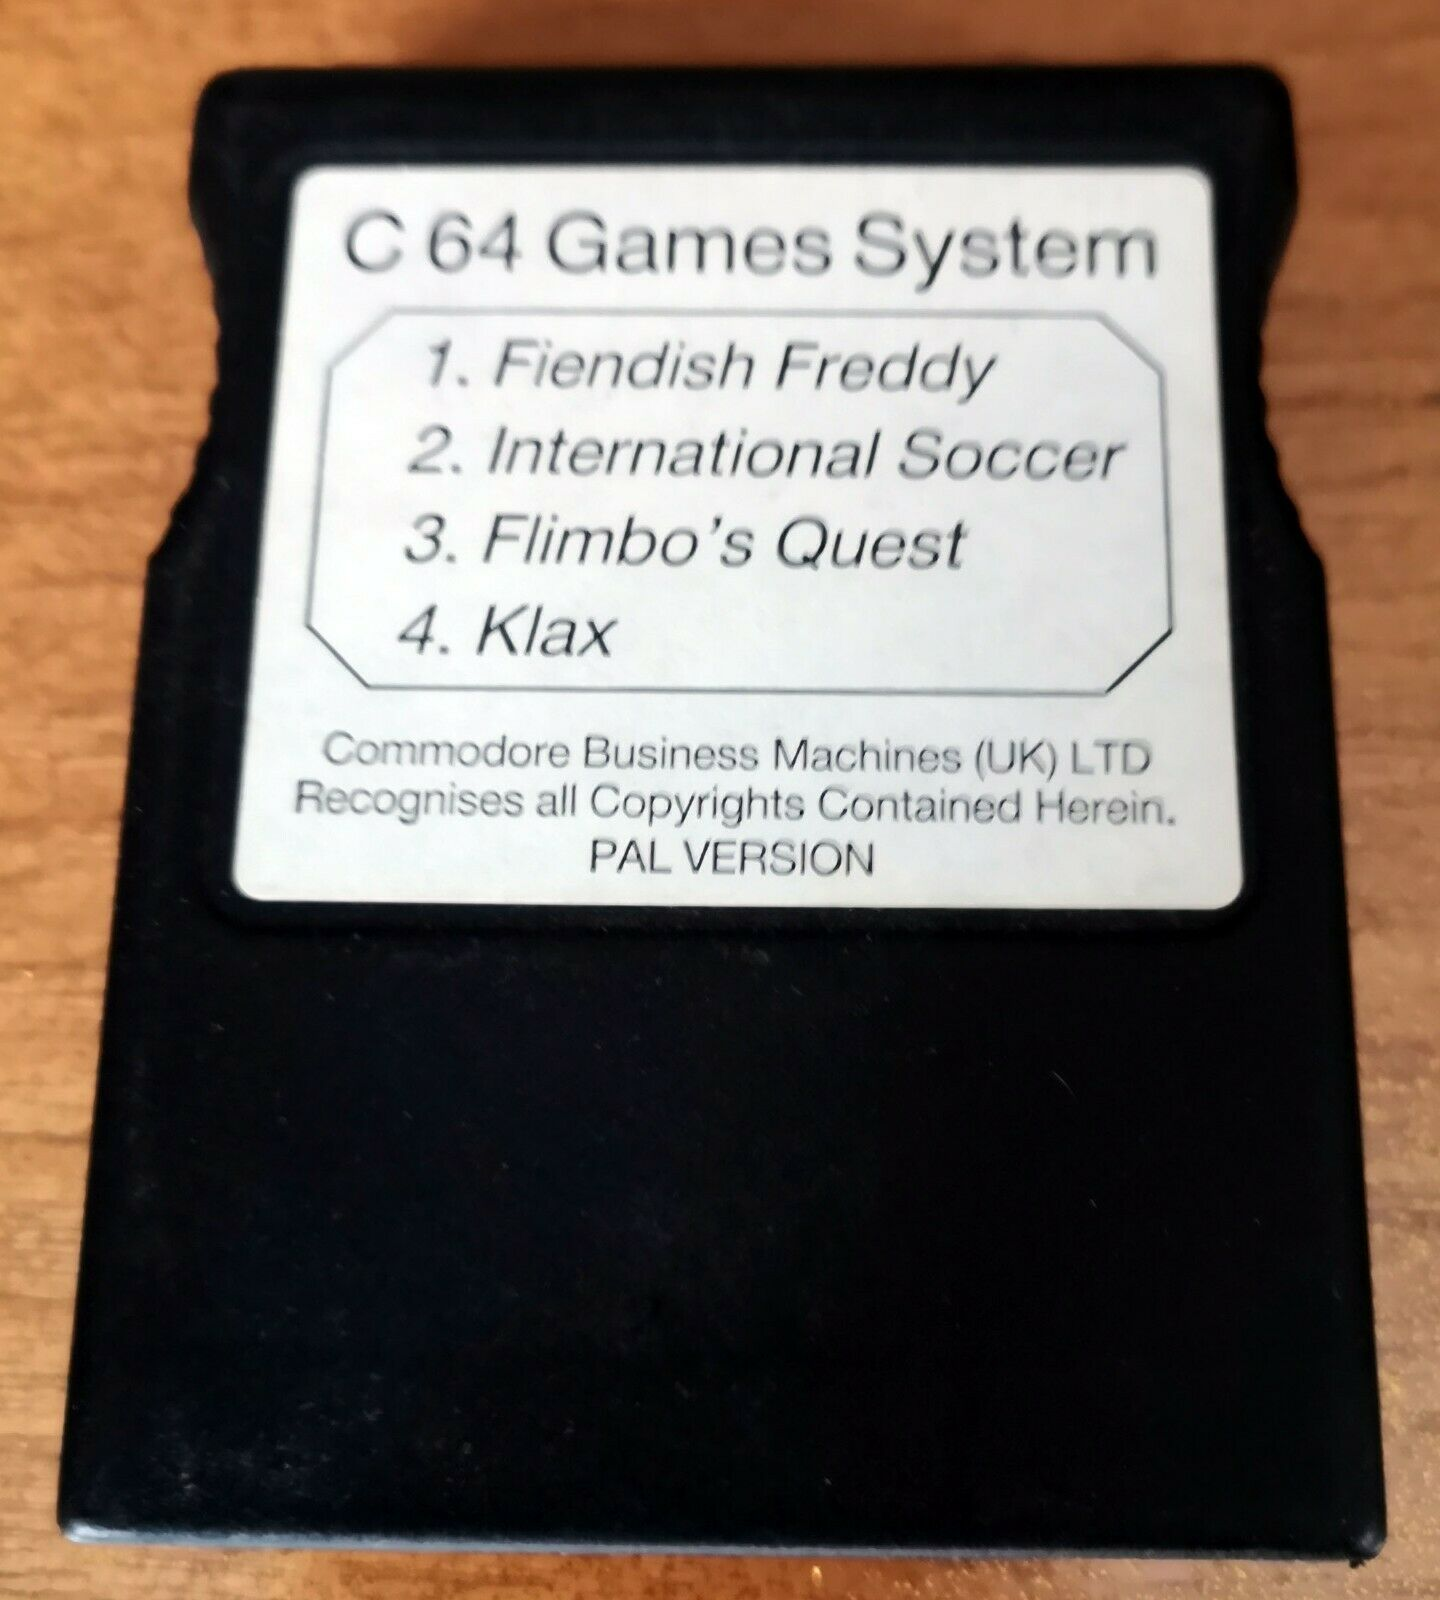 C64 Games System Cartridge